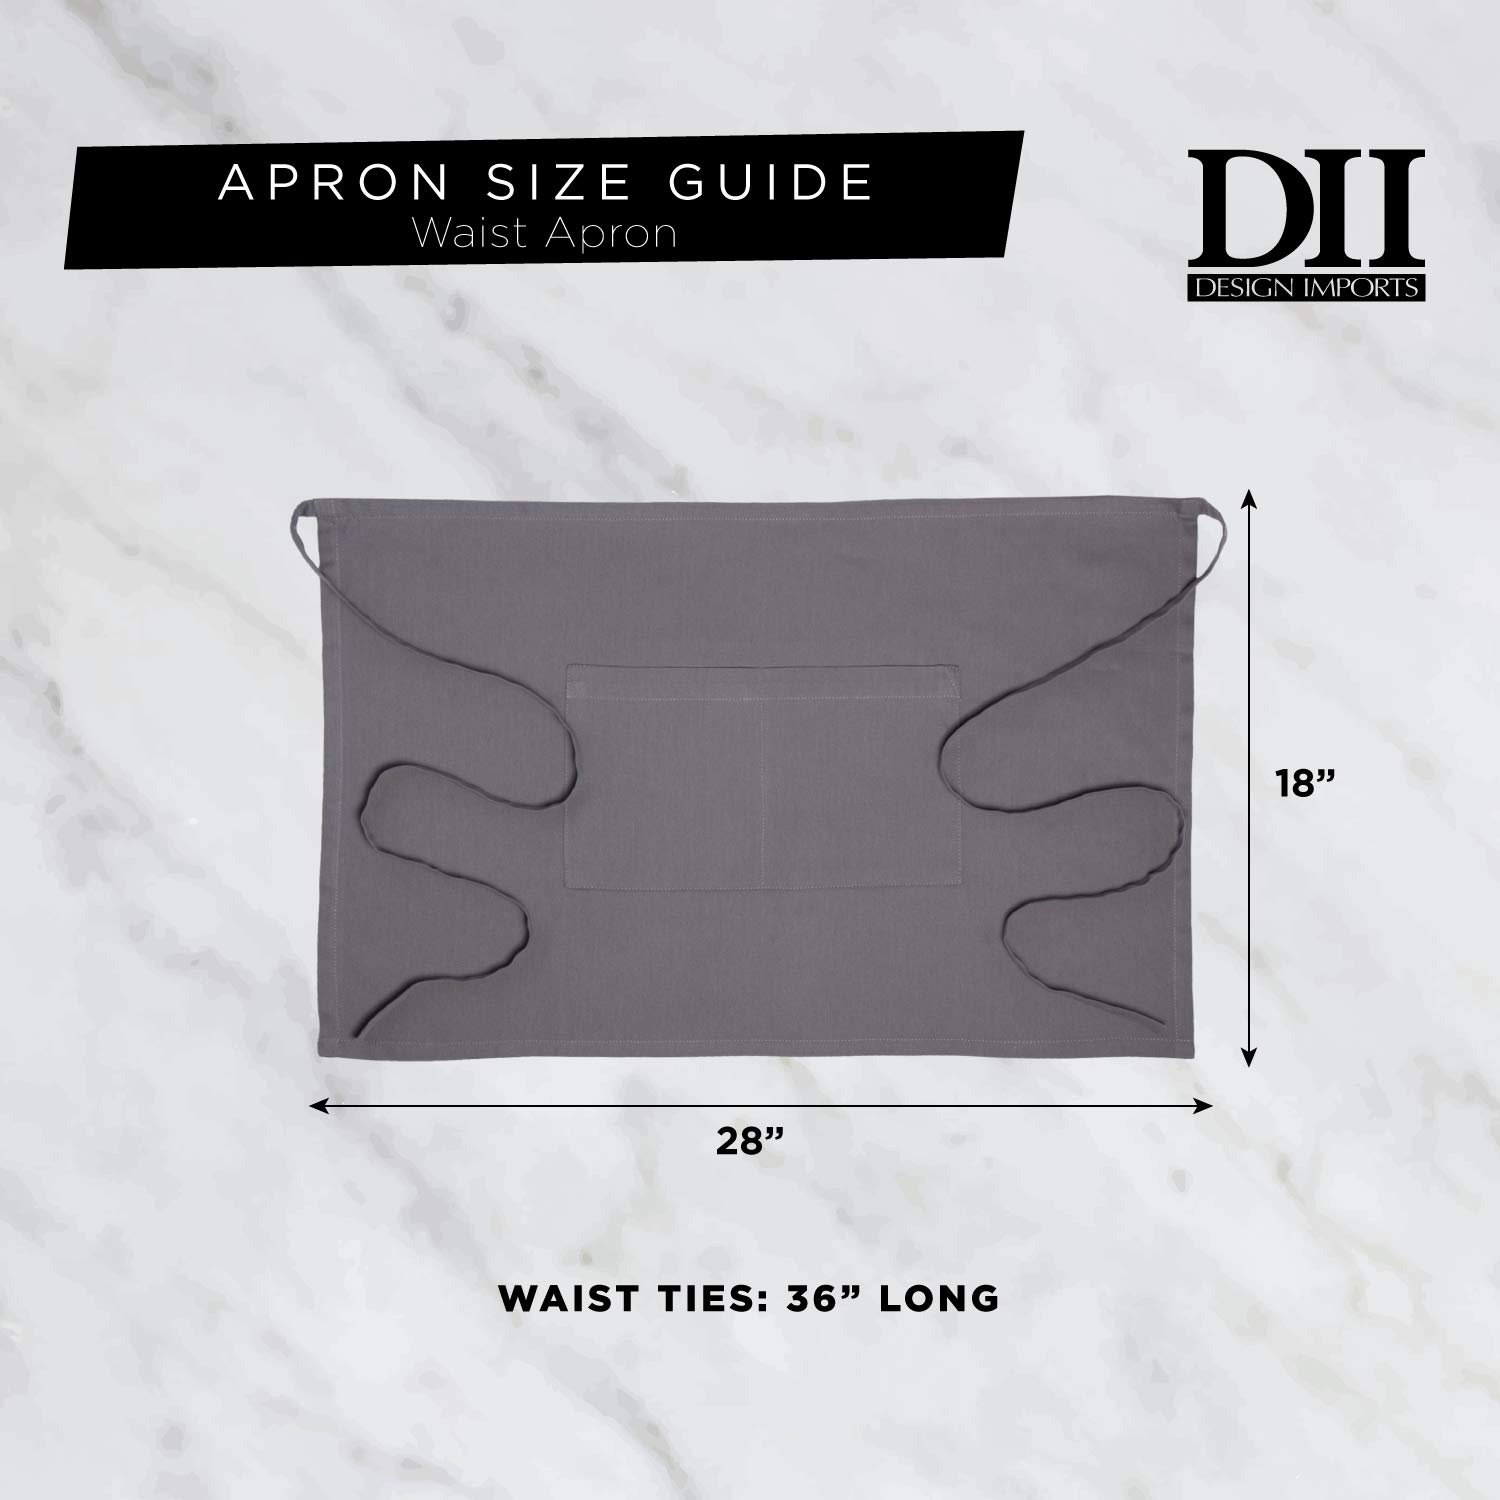 Work Shop BBQ-Aqua 32 x 28 Baking DII Cotton Adjustable Kitchen Chef Apron with Pocket and Extra Long Ties Commercial Men /& Women Bib Apron for Cooking Crafting